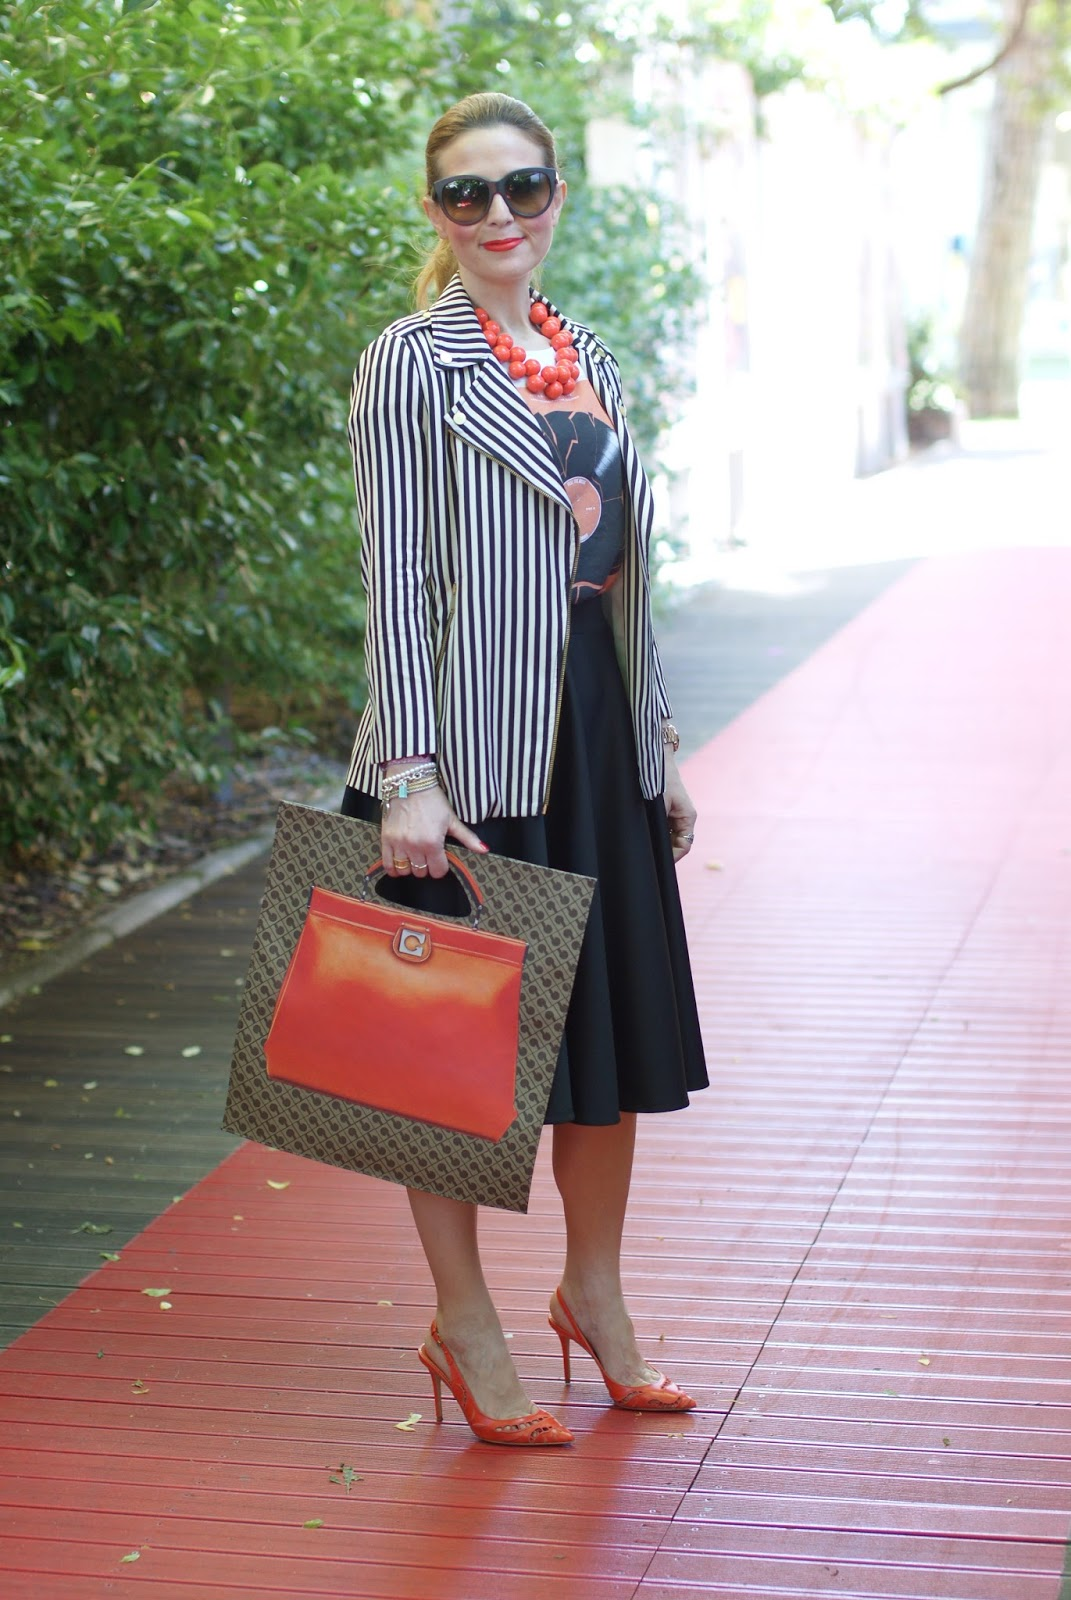 Gherardini Piattina Anniversary bag, Le Silla shoes, orange flat bag, Zara striped jacket, Fashion and Cookies fashion blogger